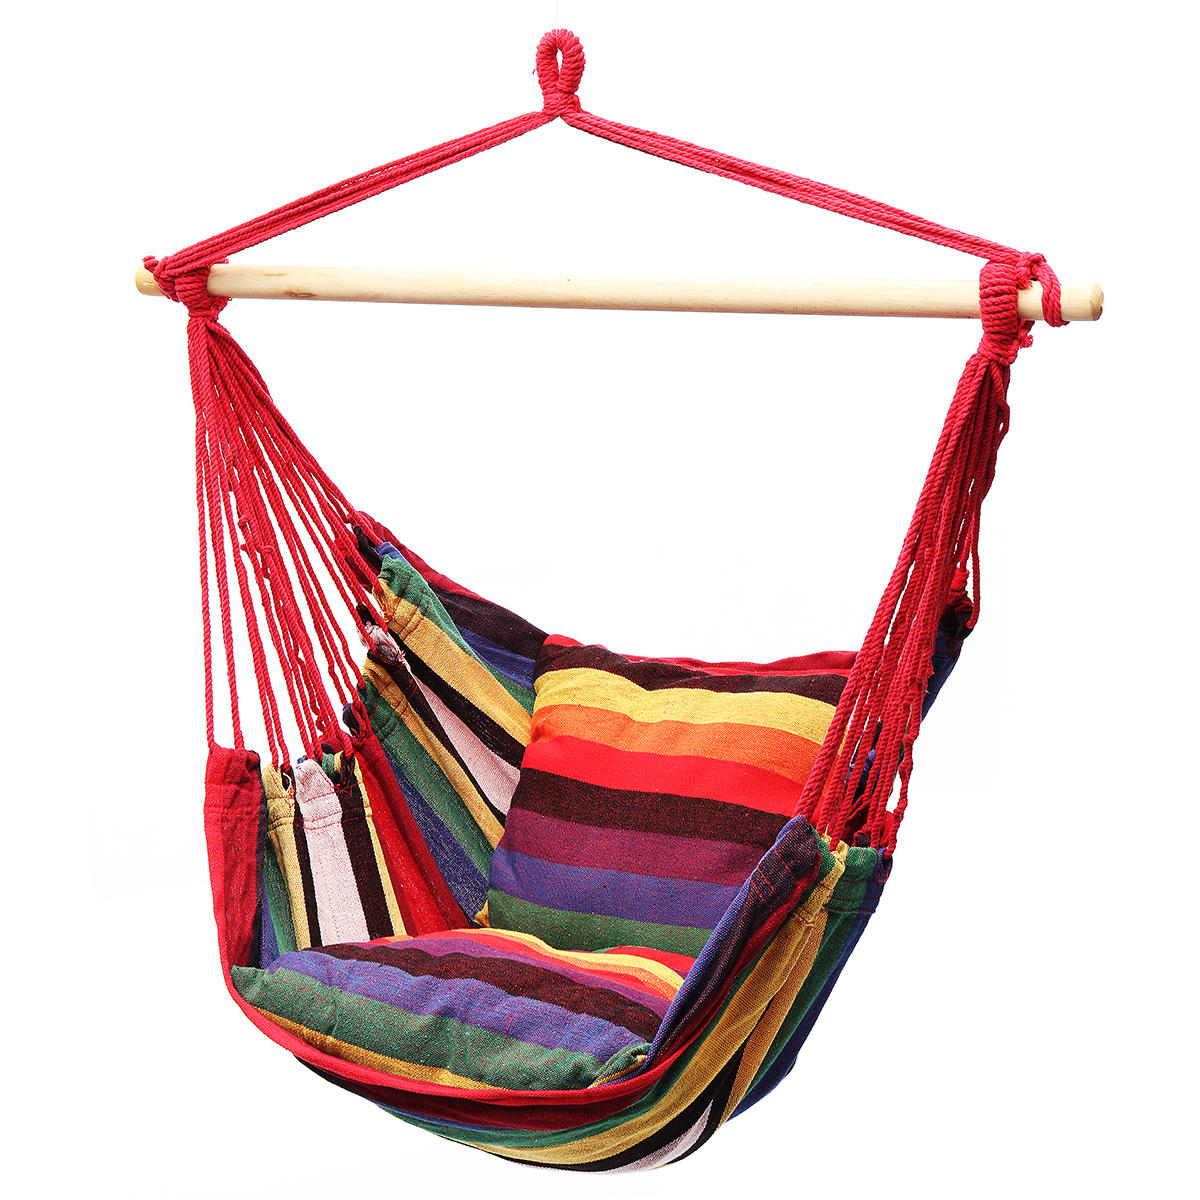 Hanging Hammock Chair Swing Bed Outdoor Indoor Camping Garden Home & 2 Pillows